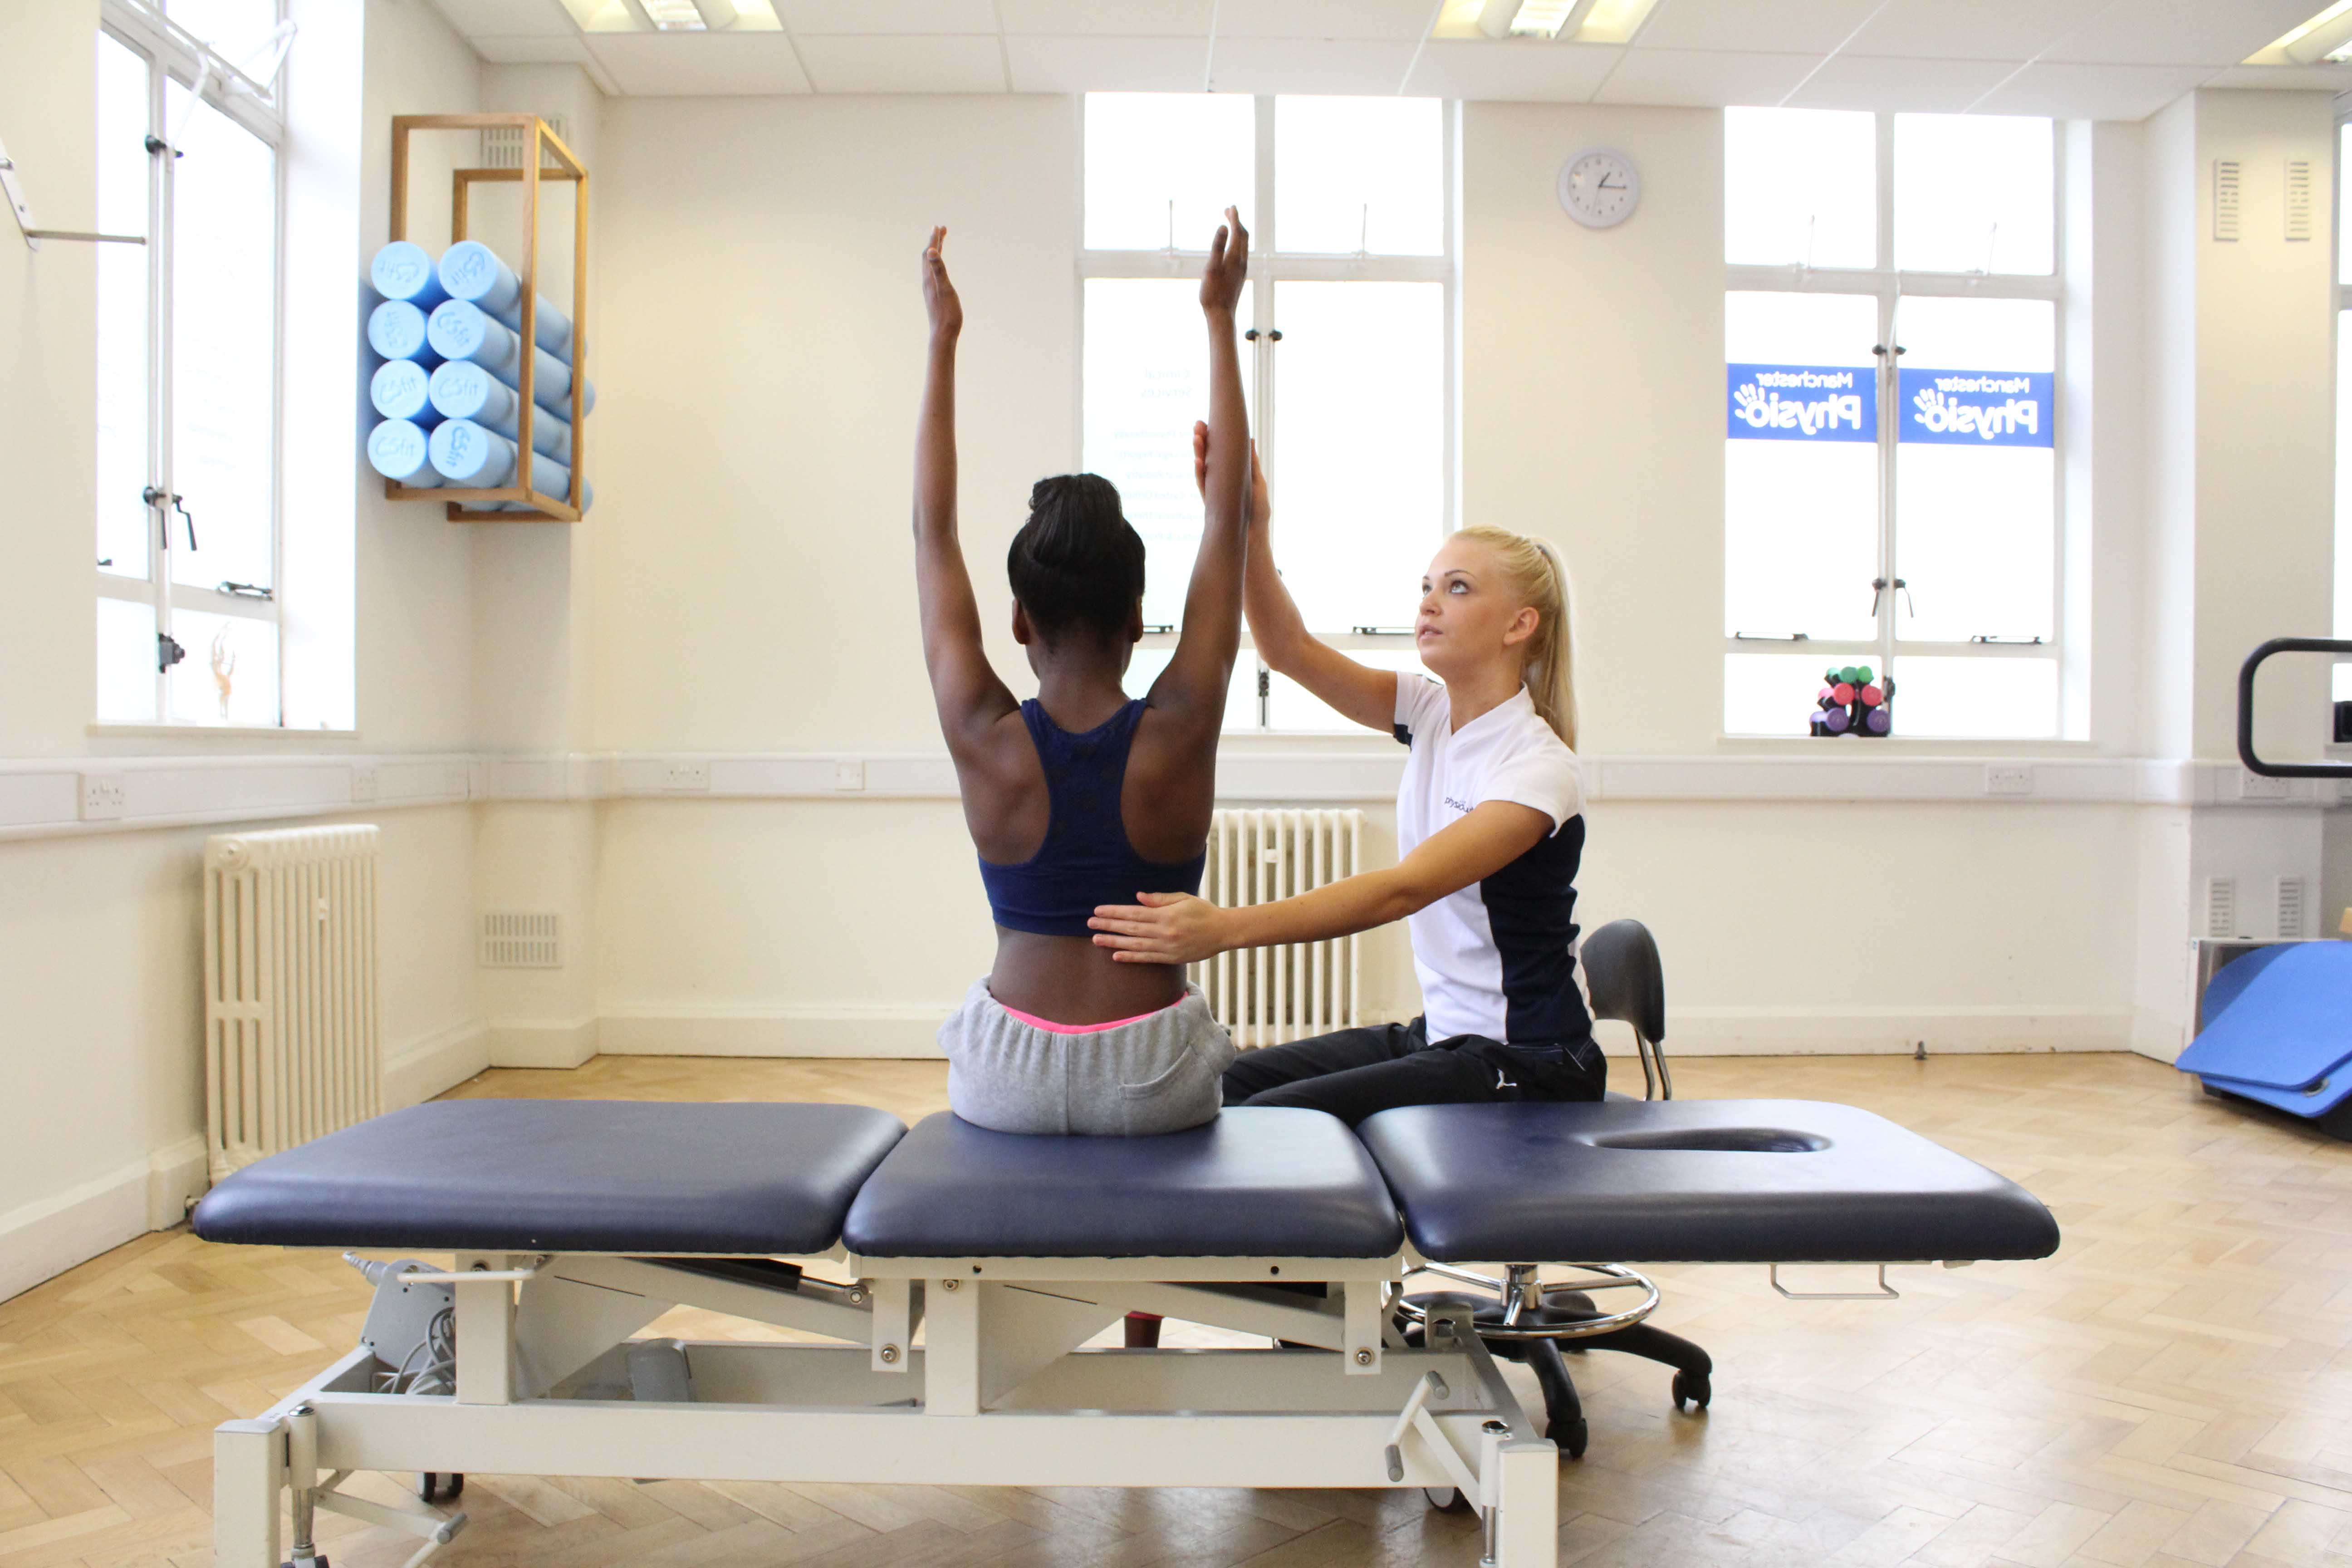 Specialist physiotherapist supervising mobilisation and stretch exercises